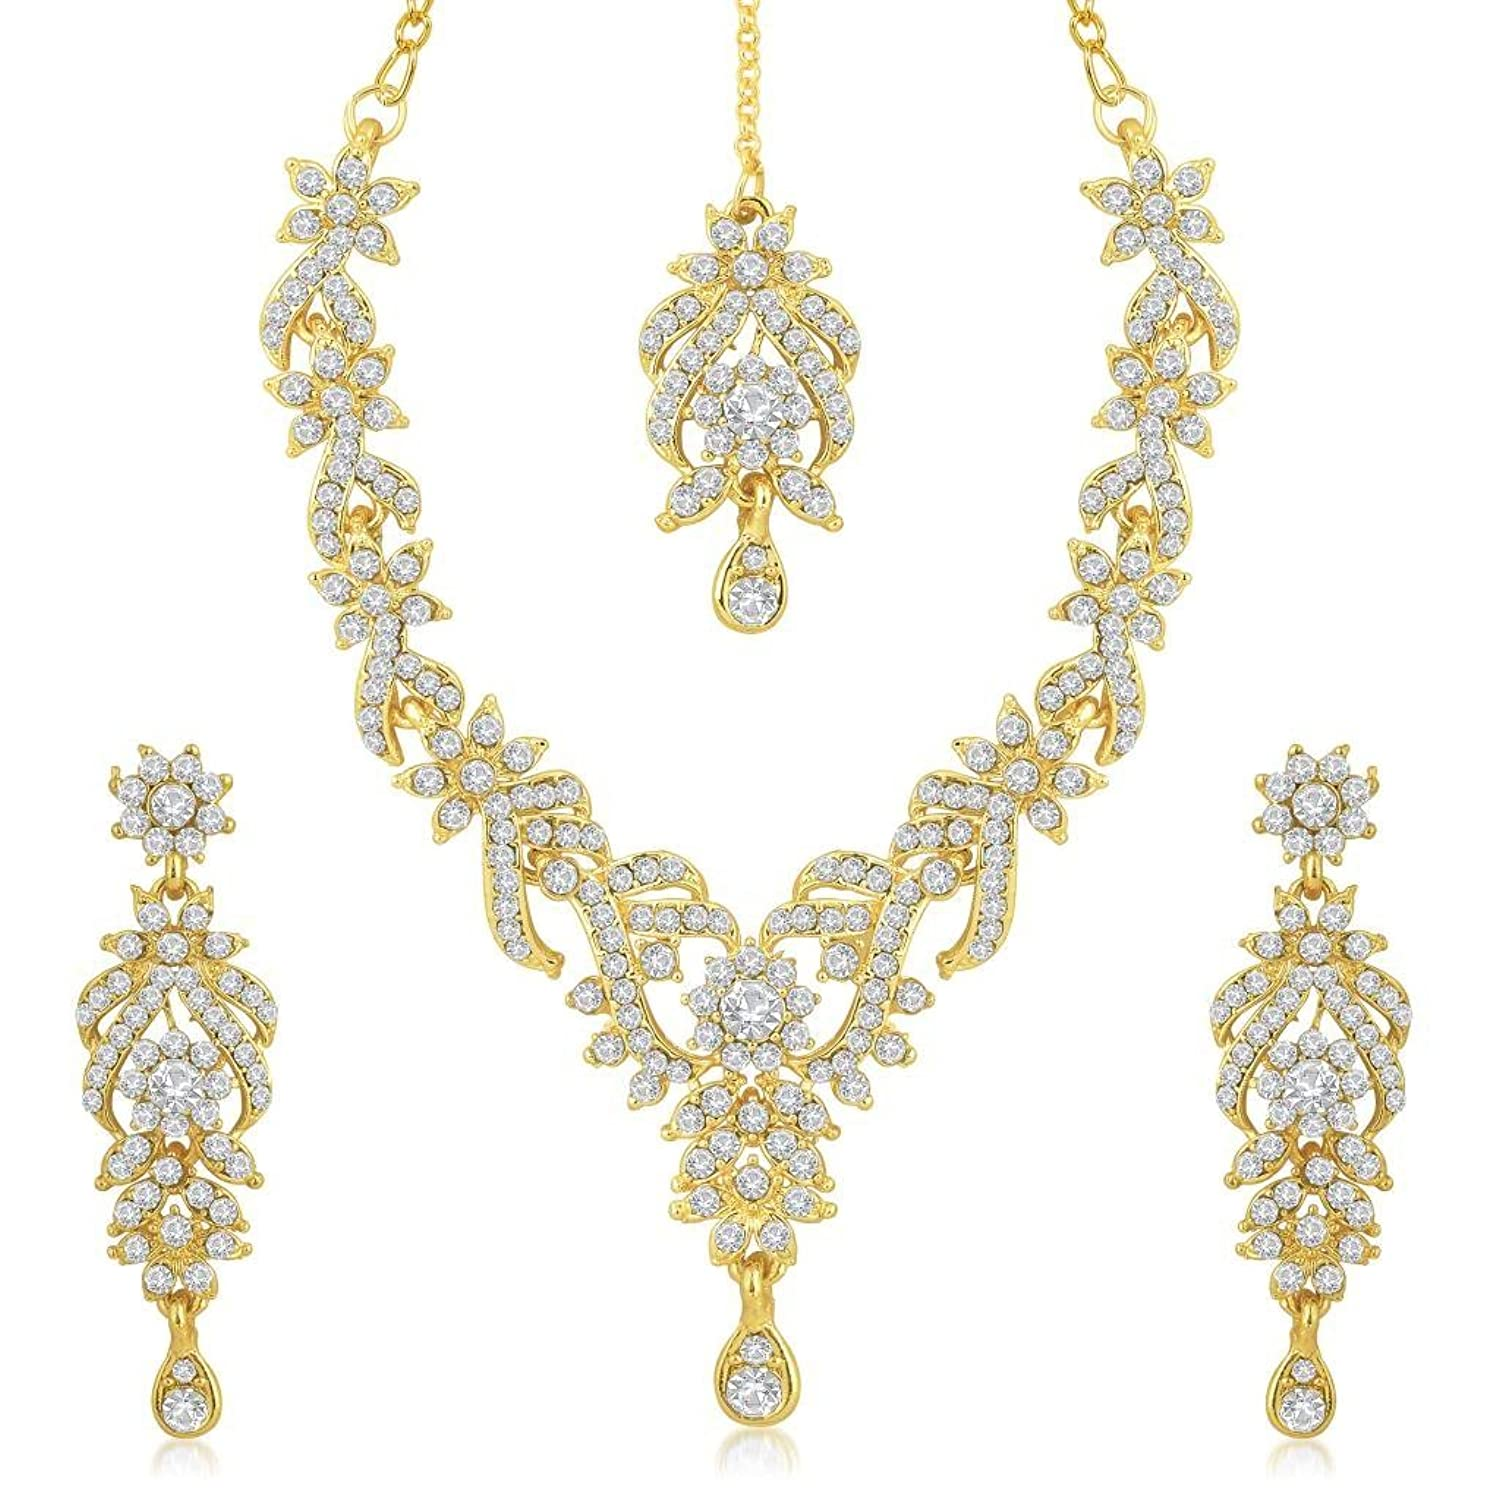 Sukkhi Gold Plated Australian Diamond Choker Necklace With Drop Earrings  And Mangtikka Set Or Women